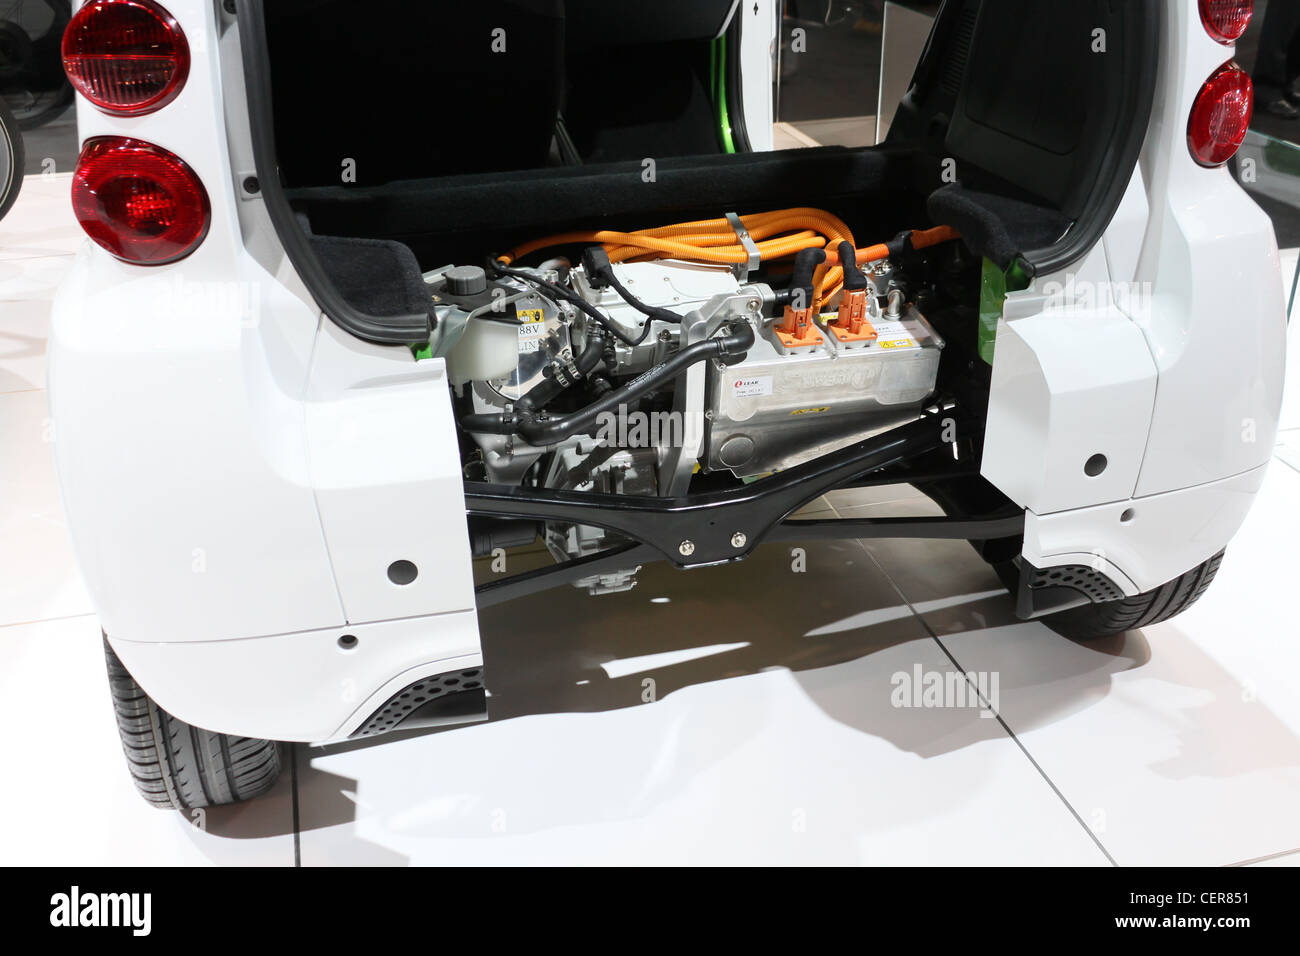 Electric Car Battery Mitsubishi Miev Stock Photo 43537229 Alamy